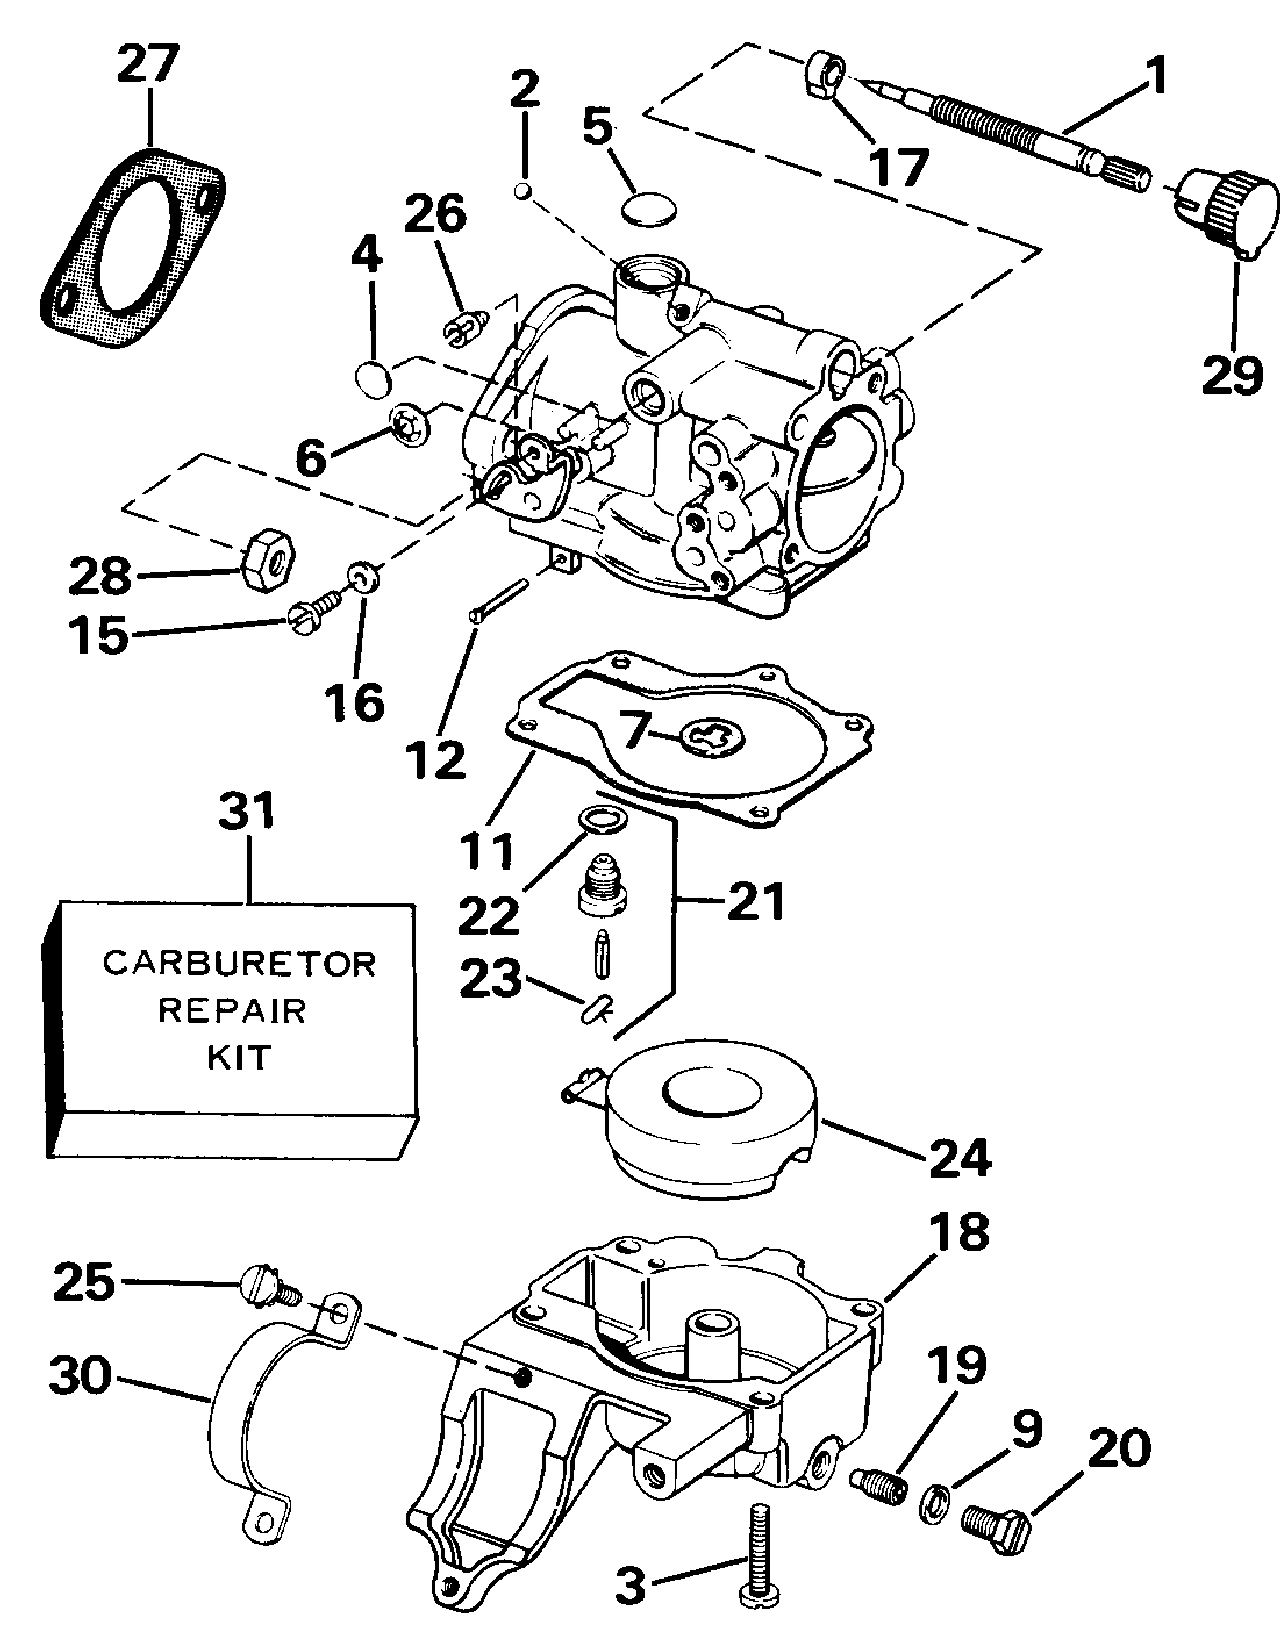 E30elcce Carburetor